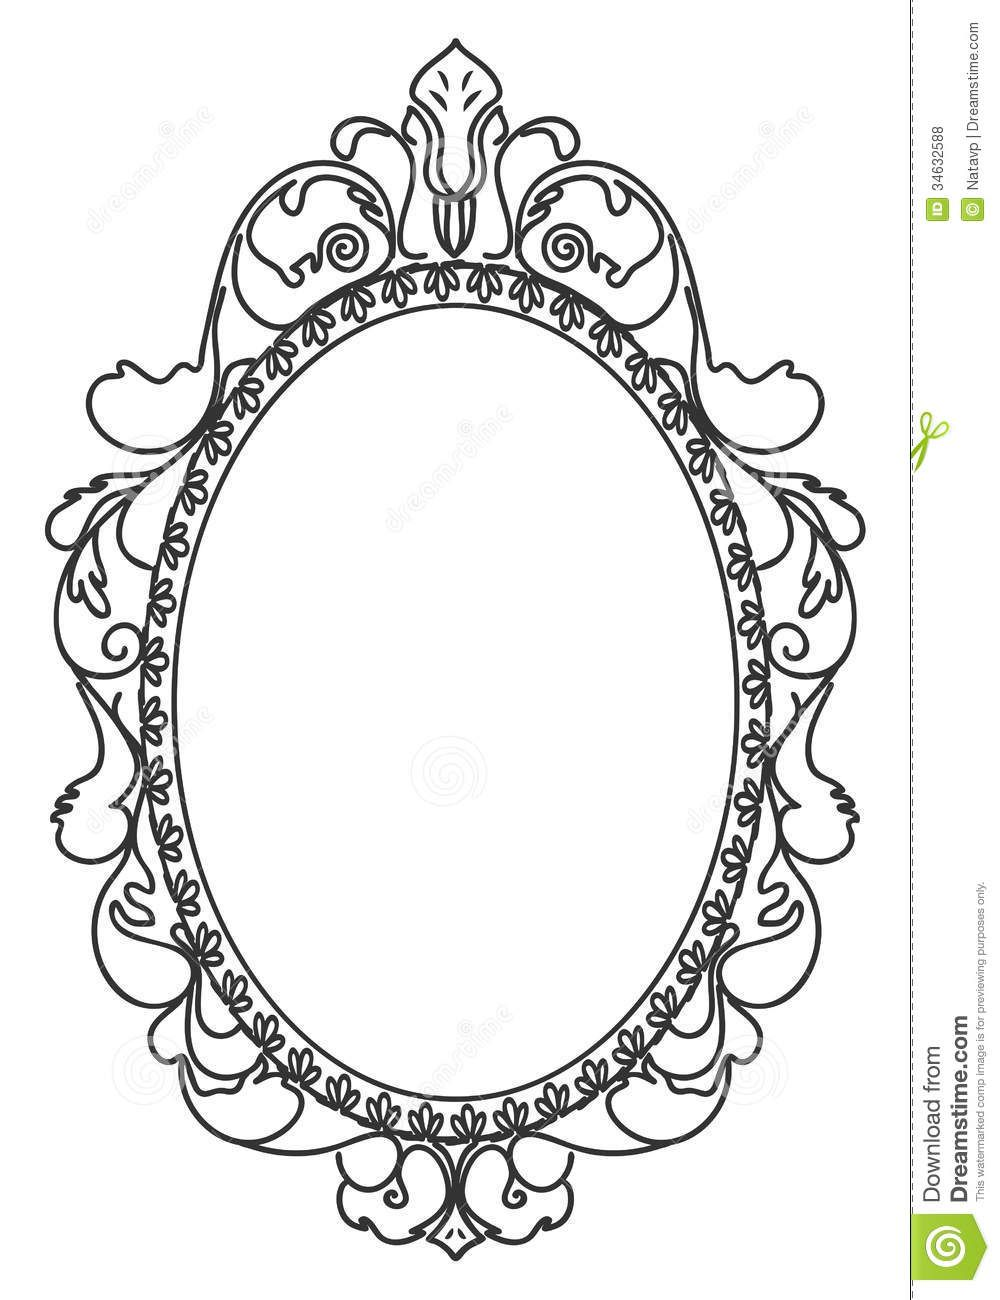 Drawing Lines Shapes Or Text On Bitmaps : Vintage oval frames vector pesquisa google artesanato